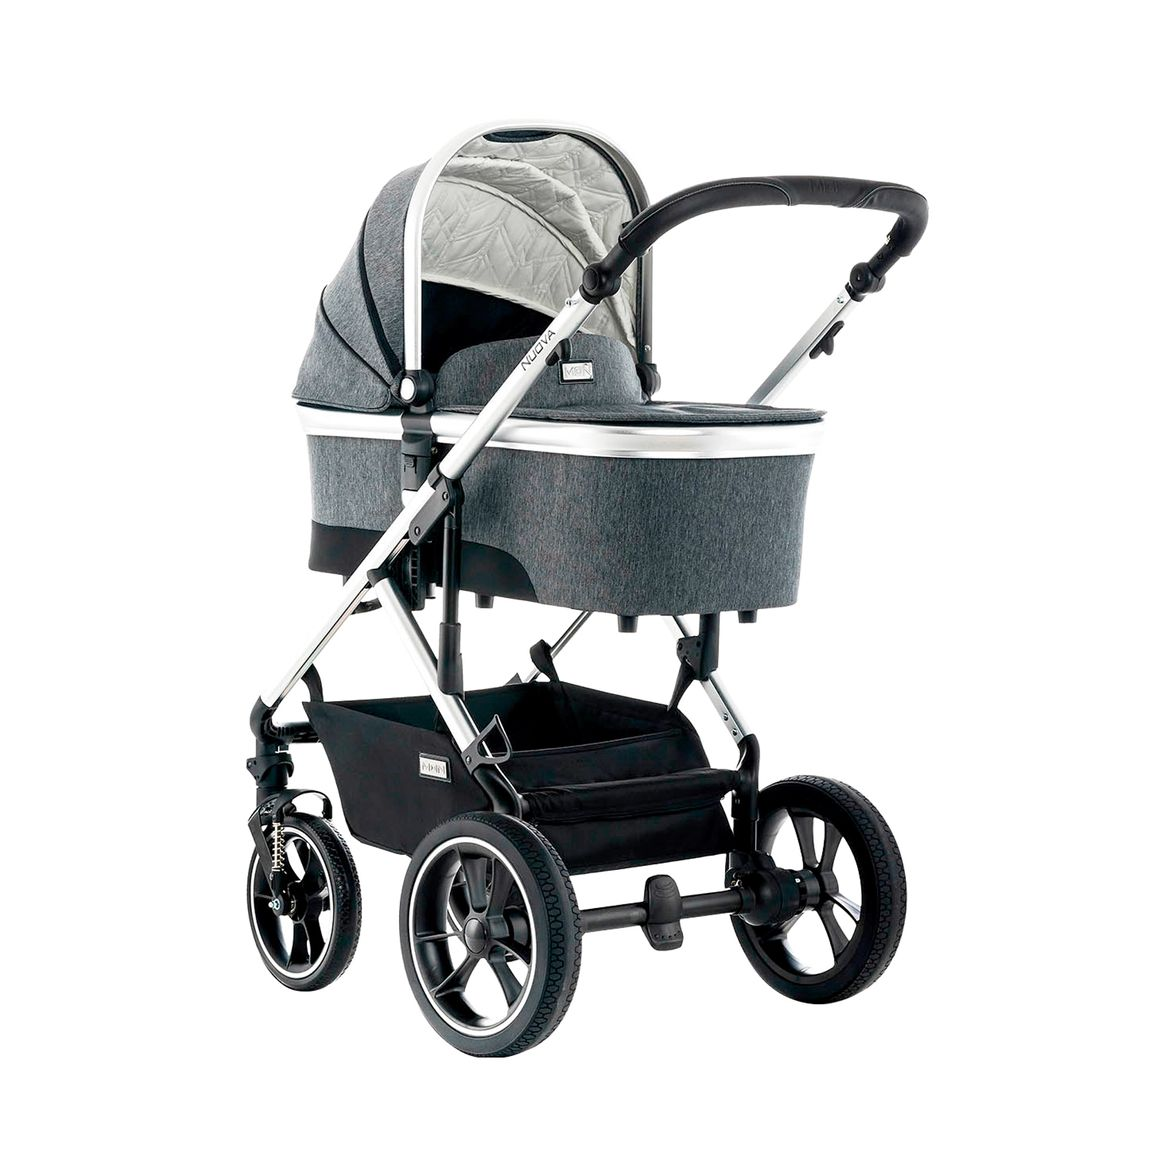 Buggy Board Moon Nuova Moon Nuova Name It Tracht Kinderwagen Umstandsmode